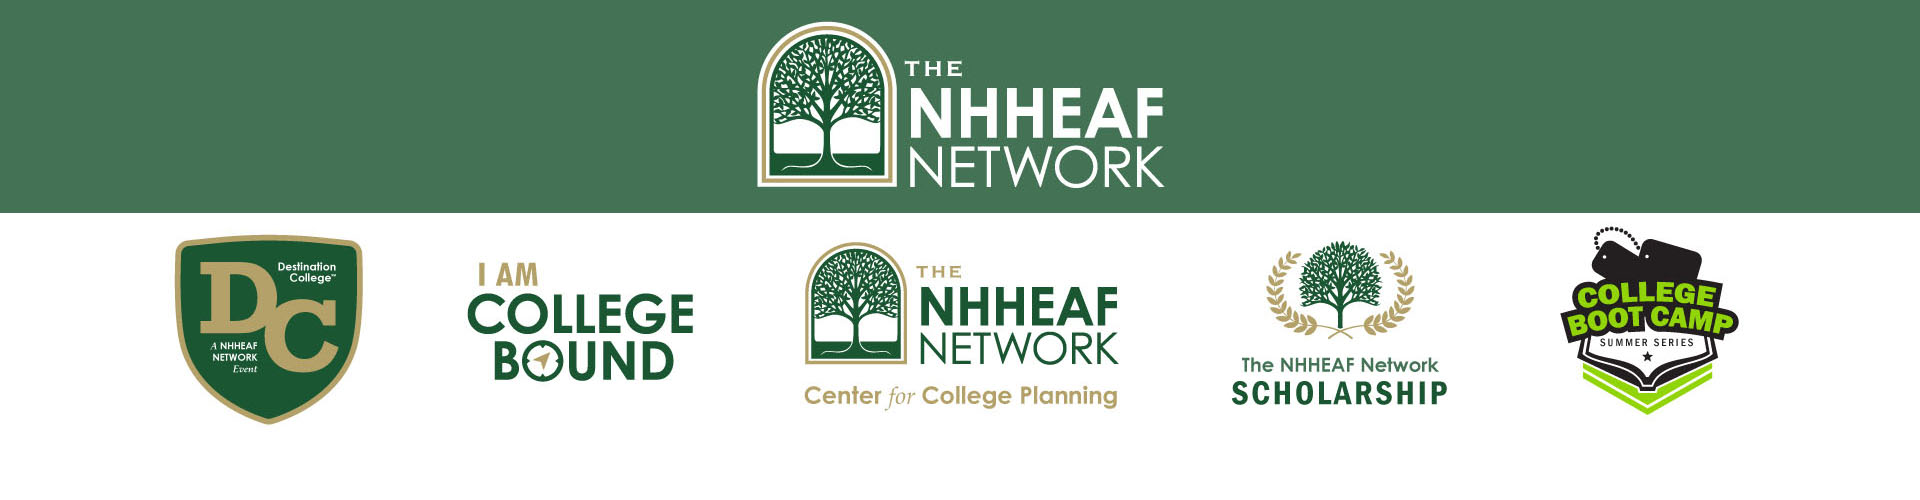 The NHHEAF Network Organizations. NH College Club. I Am College Bound. College Equals Opportunity. Destination College. Center for College Planning.